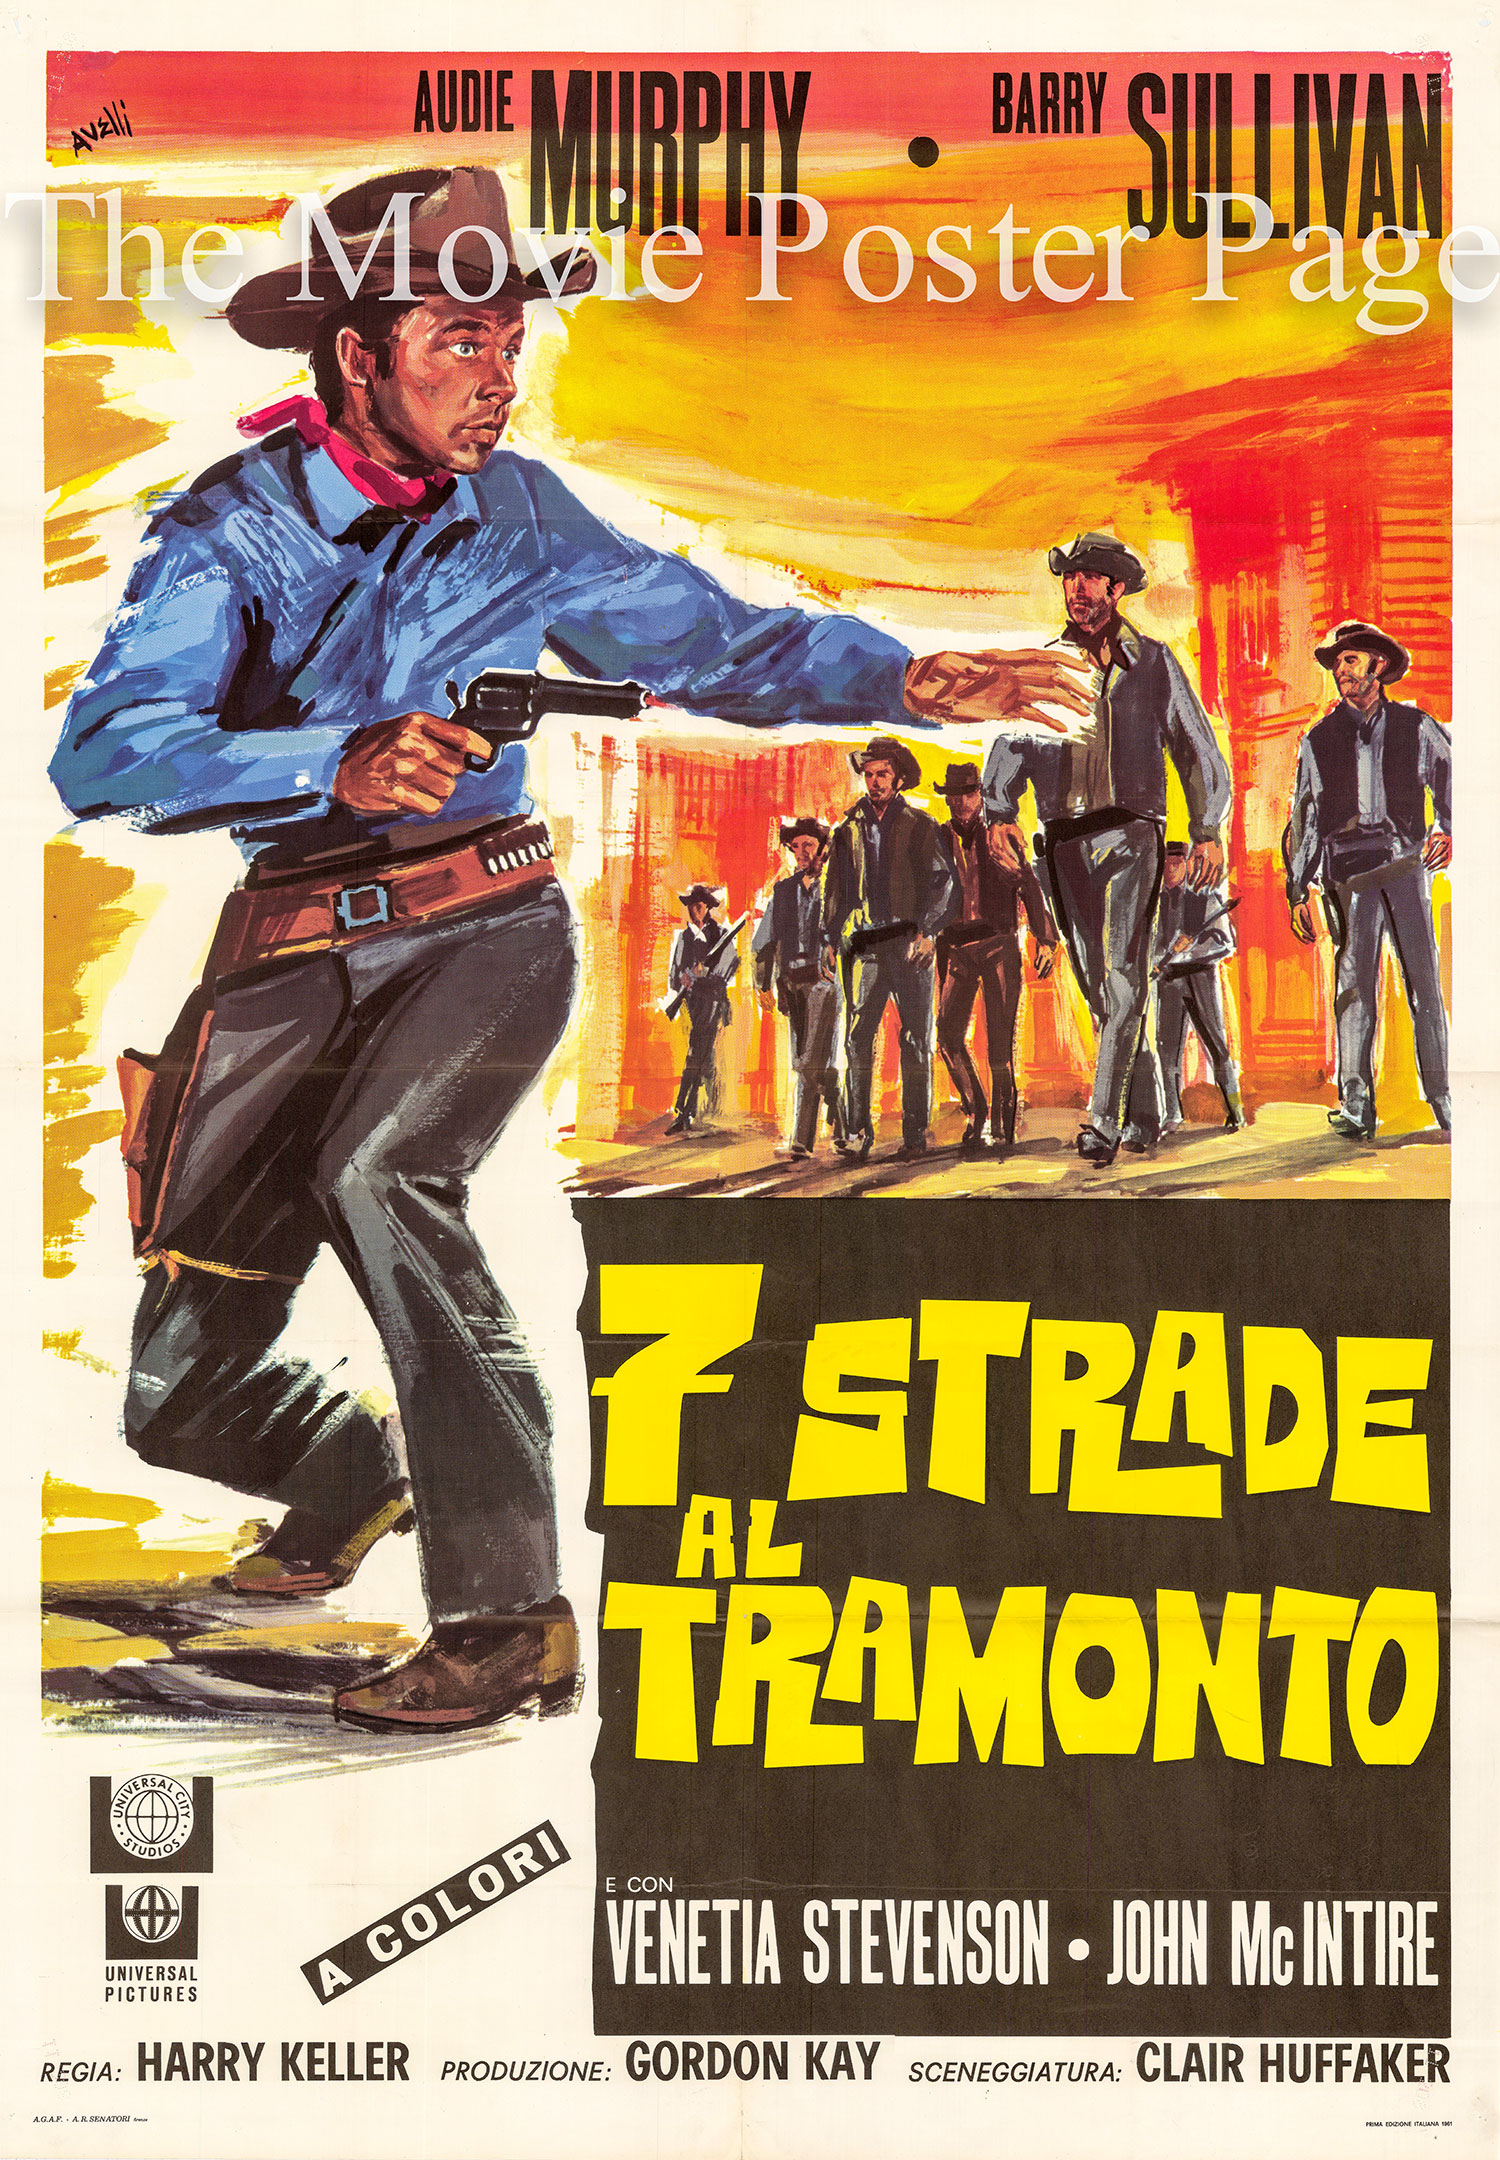 Pictured is an italian two-sheet poster for the 1960 Harry Keller film <i>Seven Ways from Sundown</i> starring Audie Murphy as Seven Ways from Sundown Jones.